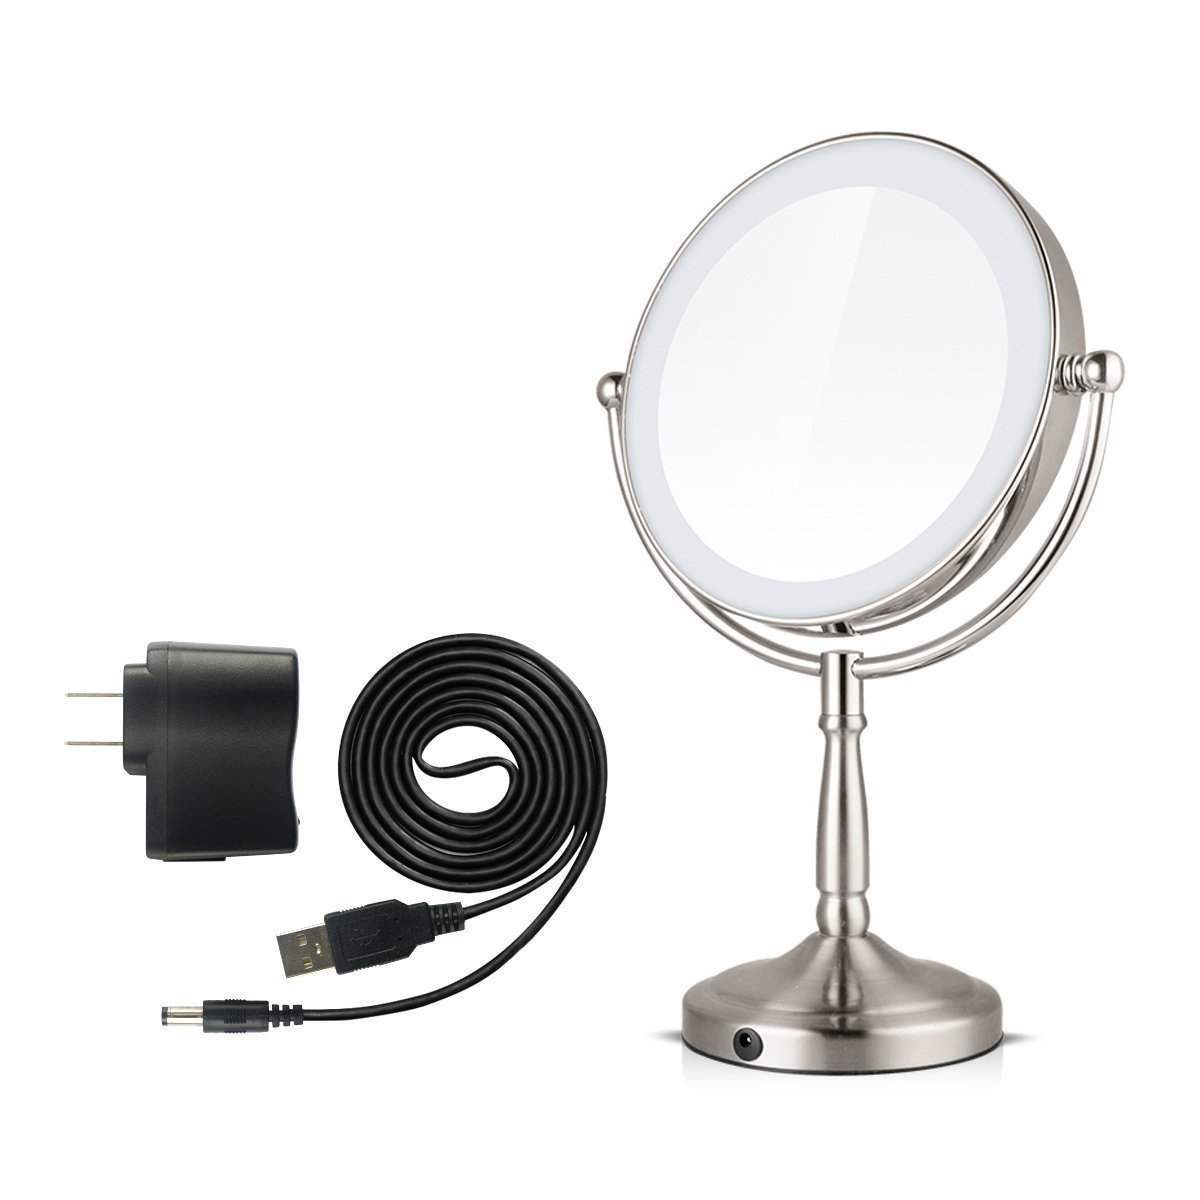 8 INCH illuminated magnification Mirror Swivel Cosmetics Mirror with Light,3X Magnification table top vintage vanity makeup mirror shaving mirror TRAXANDCO